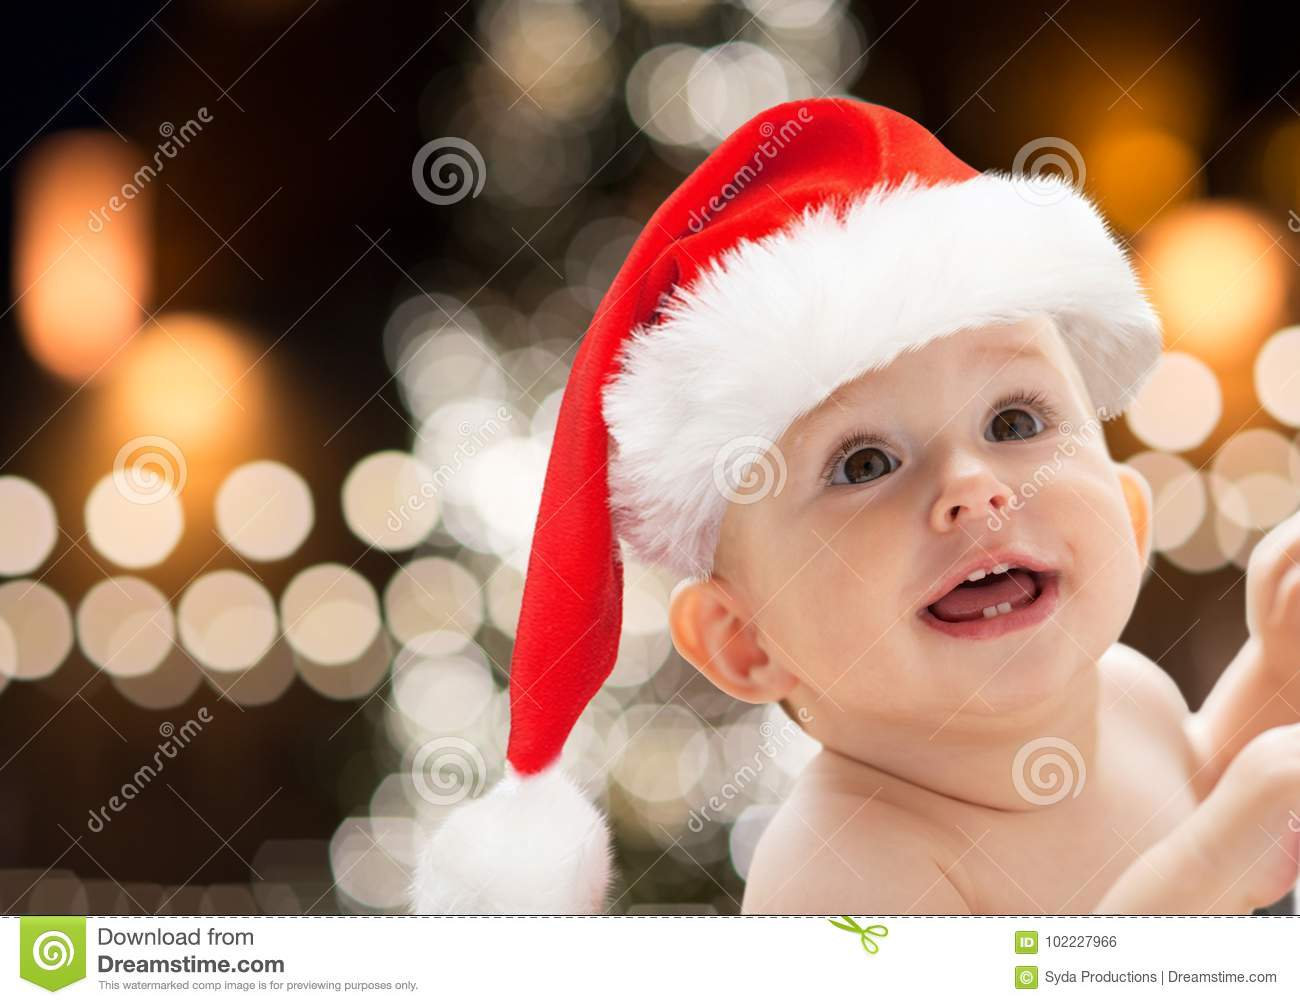 c2684eab56828 Close Up Of Little Baby In Santa Hat At Christmas Stock Photo ...